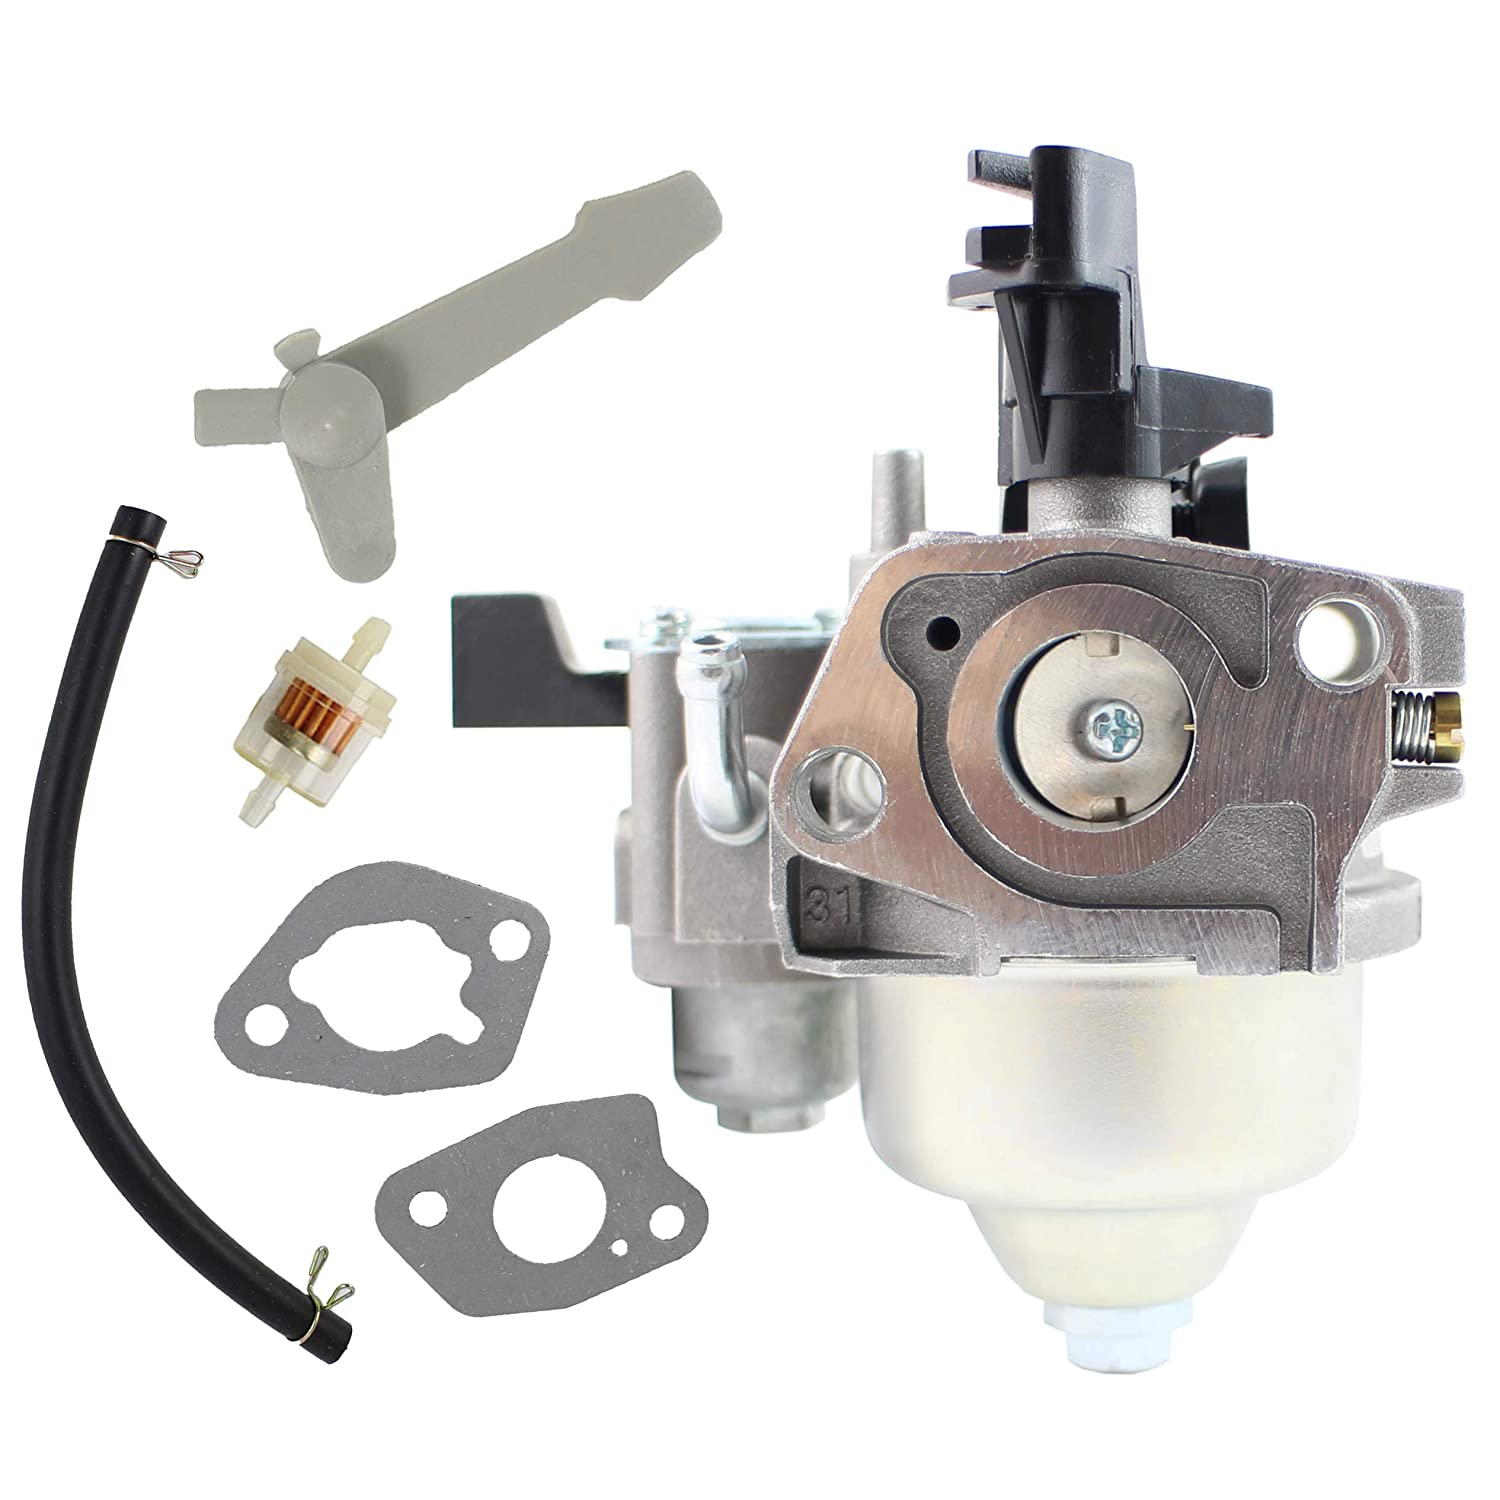 Pro Chaser Harbor Freight Predator 68121 69727 Carburetor for Aldi Kingcraft 2400PSI Titan TPW3000 ES TPW2200 Pressure Washer Powermate P-RTT-196MD Rear Tine Rotary Tiller Homelite HL252300 UT80522B